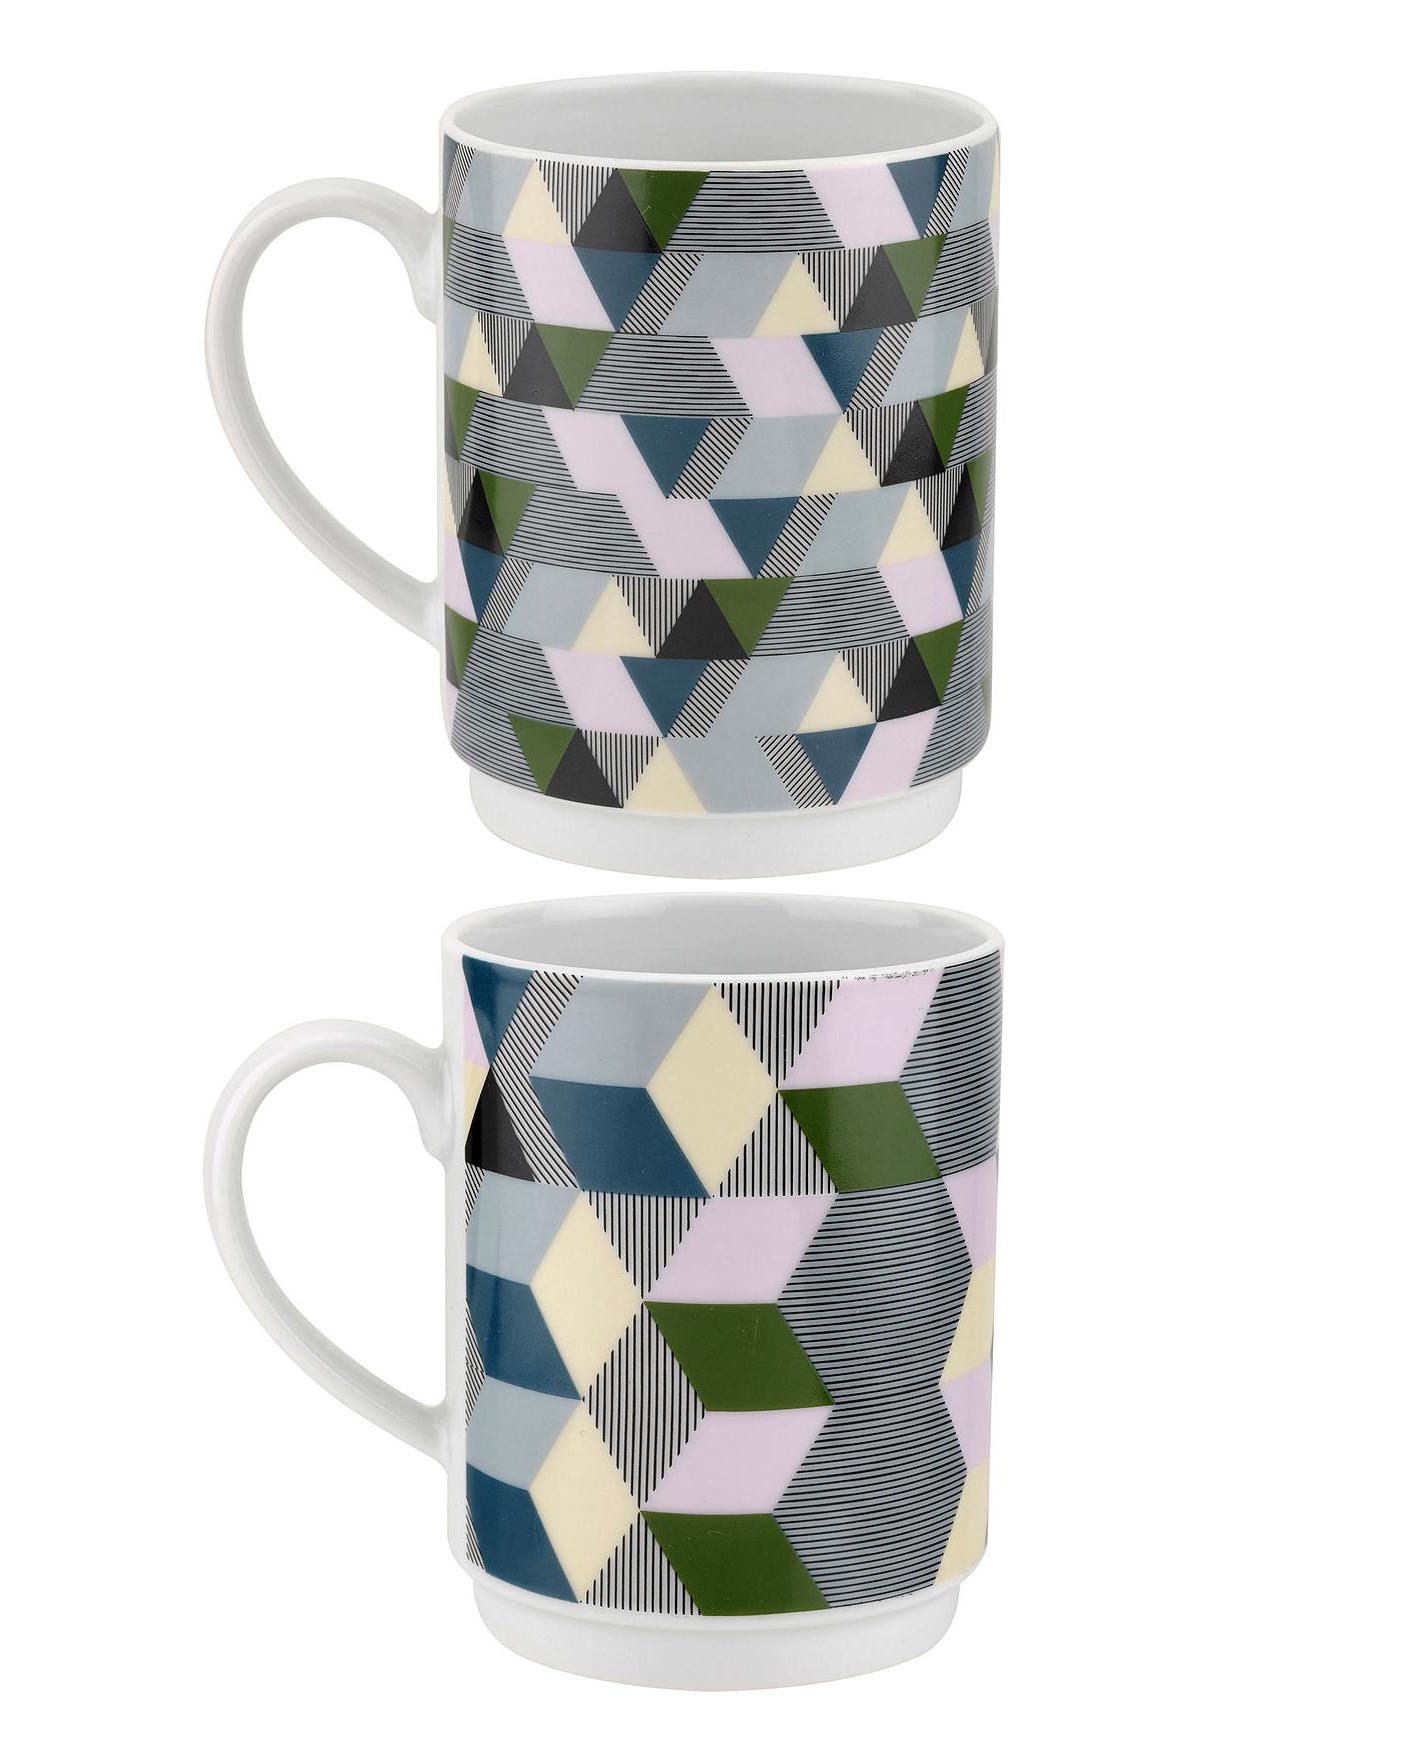 Portmeirion Geometrics Stacking Mugs Intended For 2020 Portmeirion Armchairs (View 12 of 20)